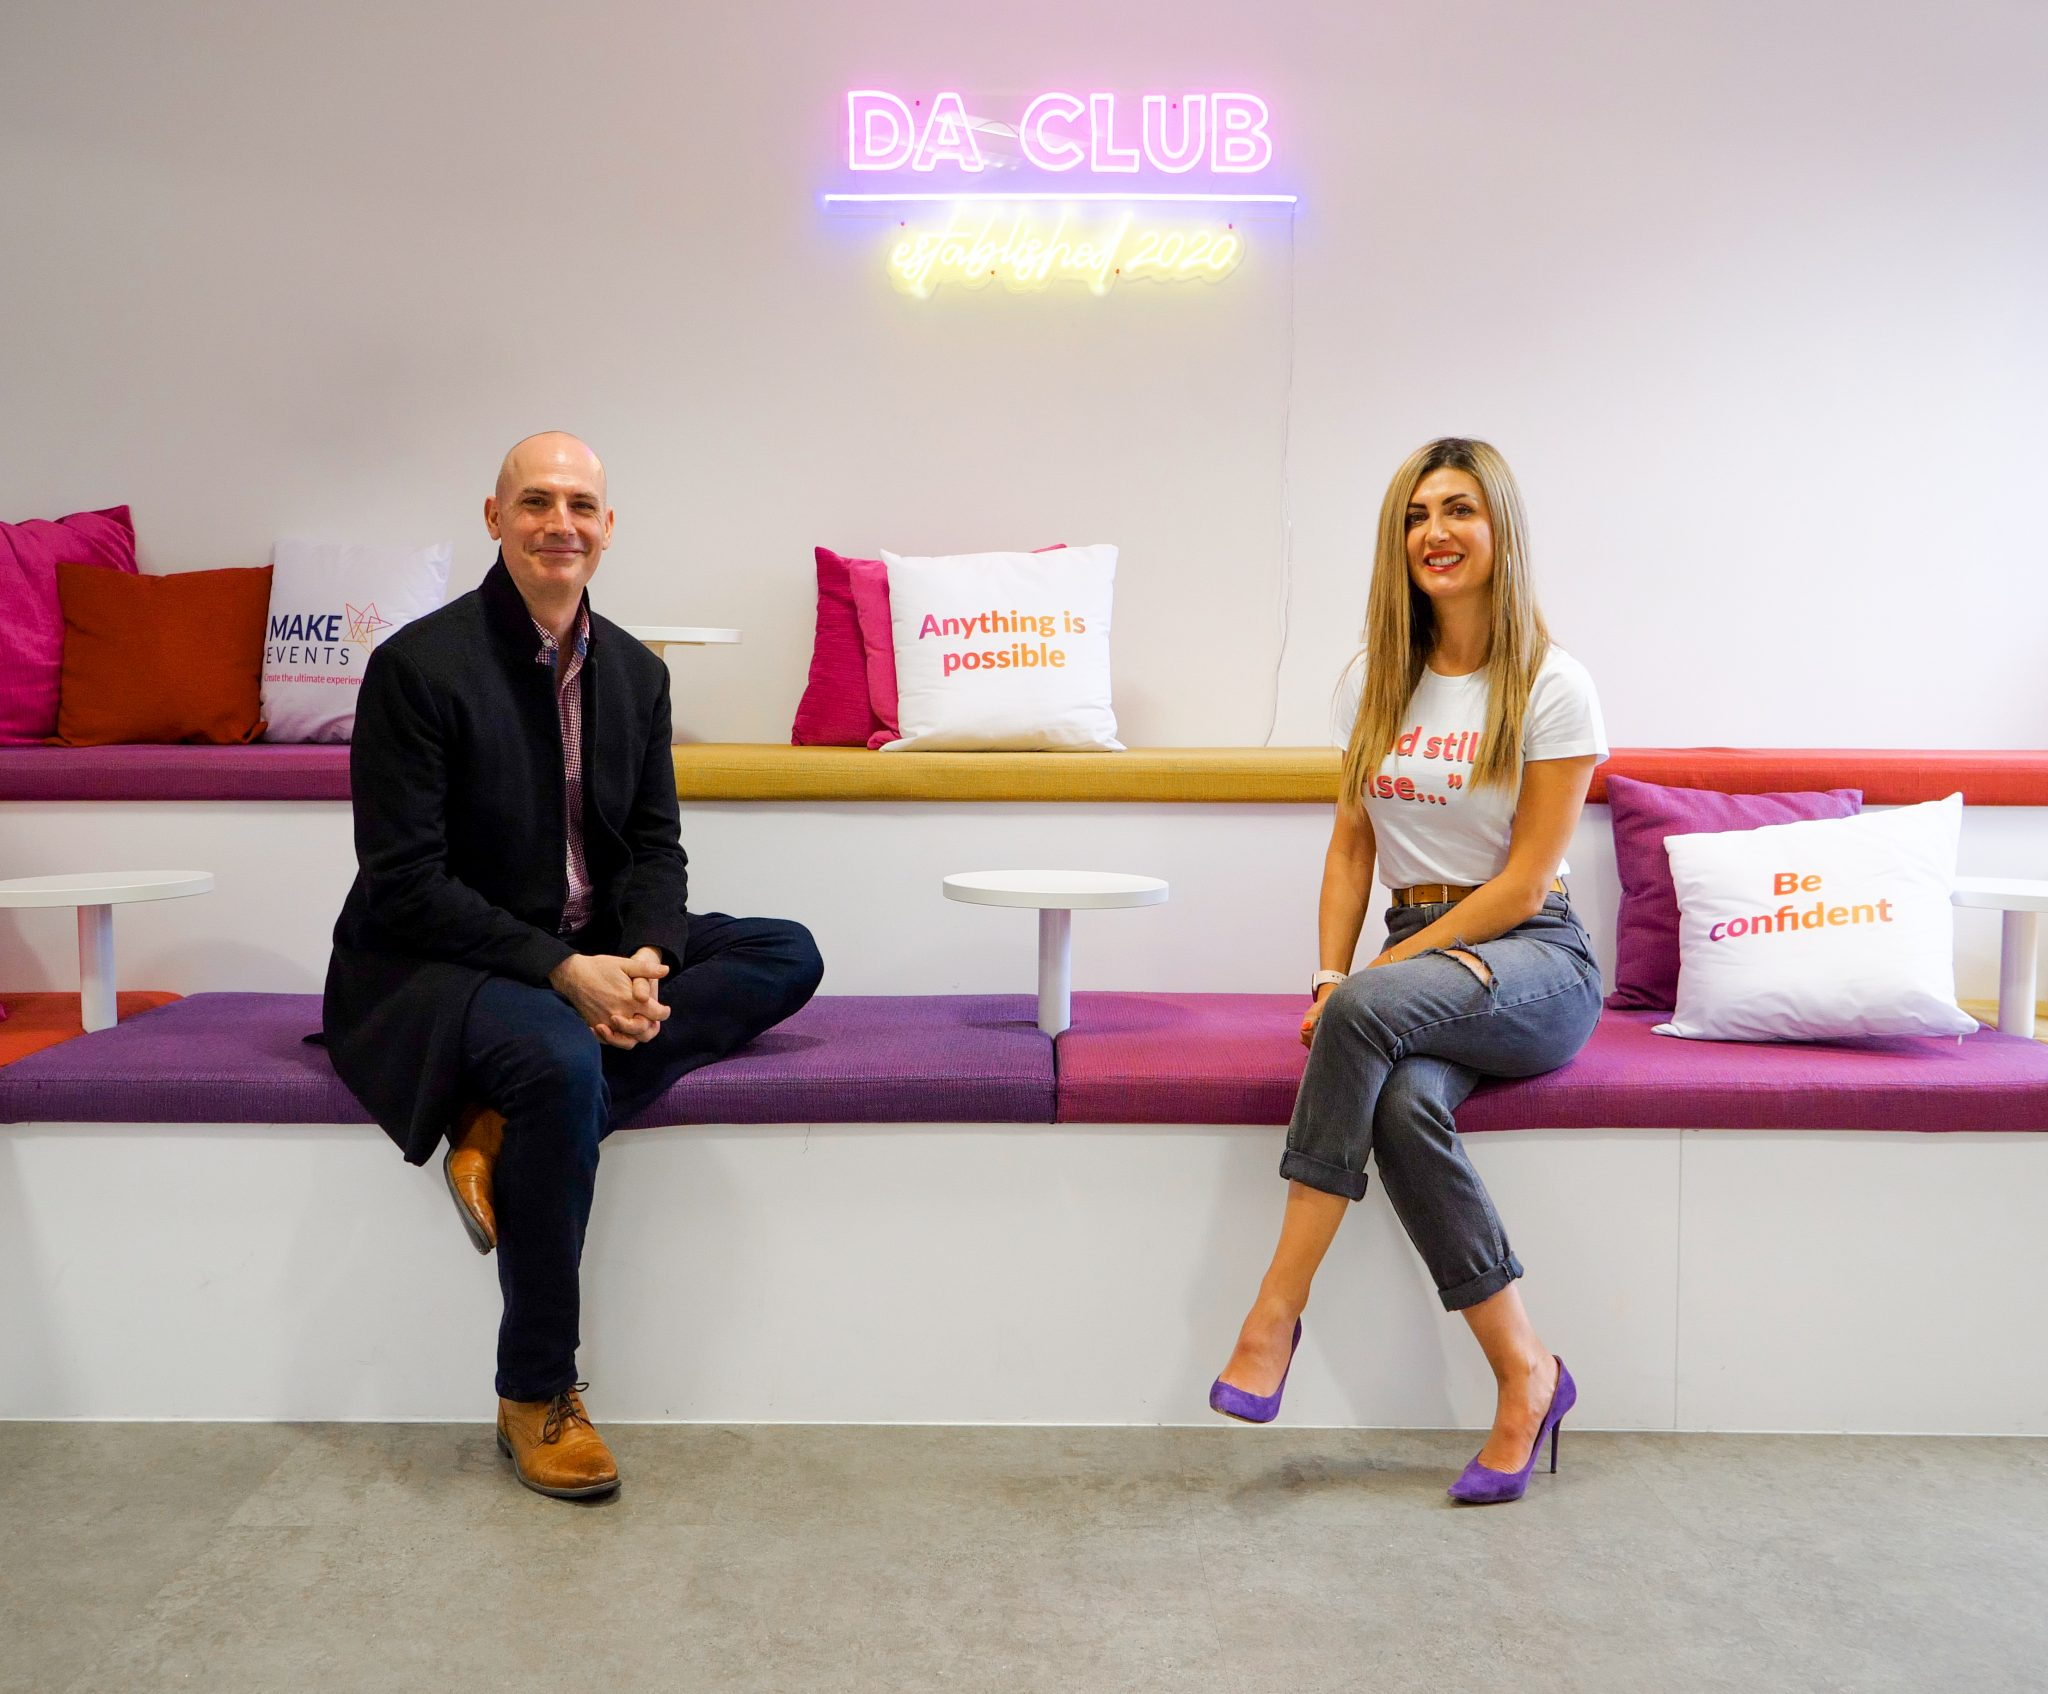 Make Events | Brand Management, Corporate and Virtual Events Company | Holly & Nick